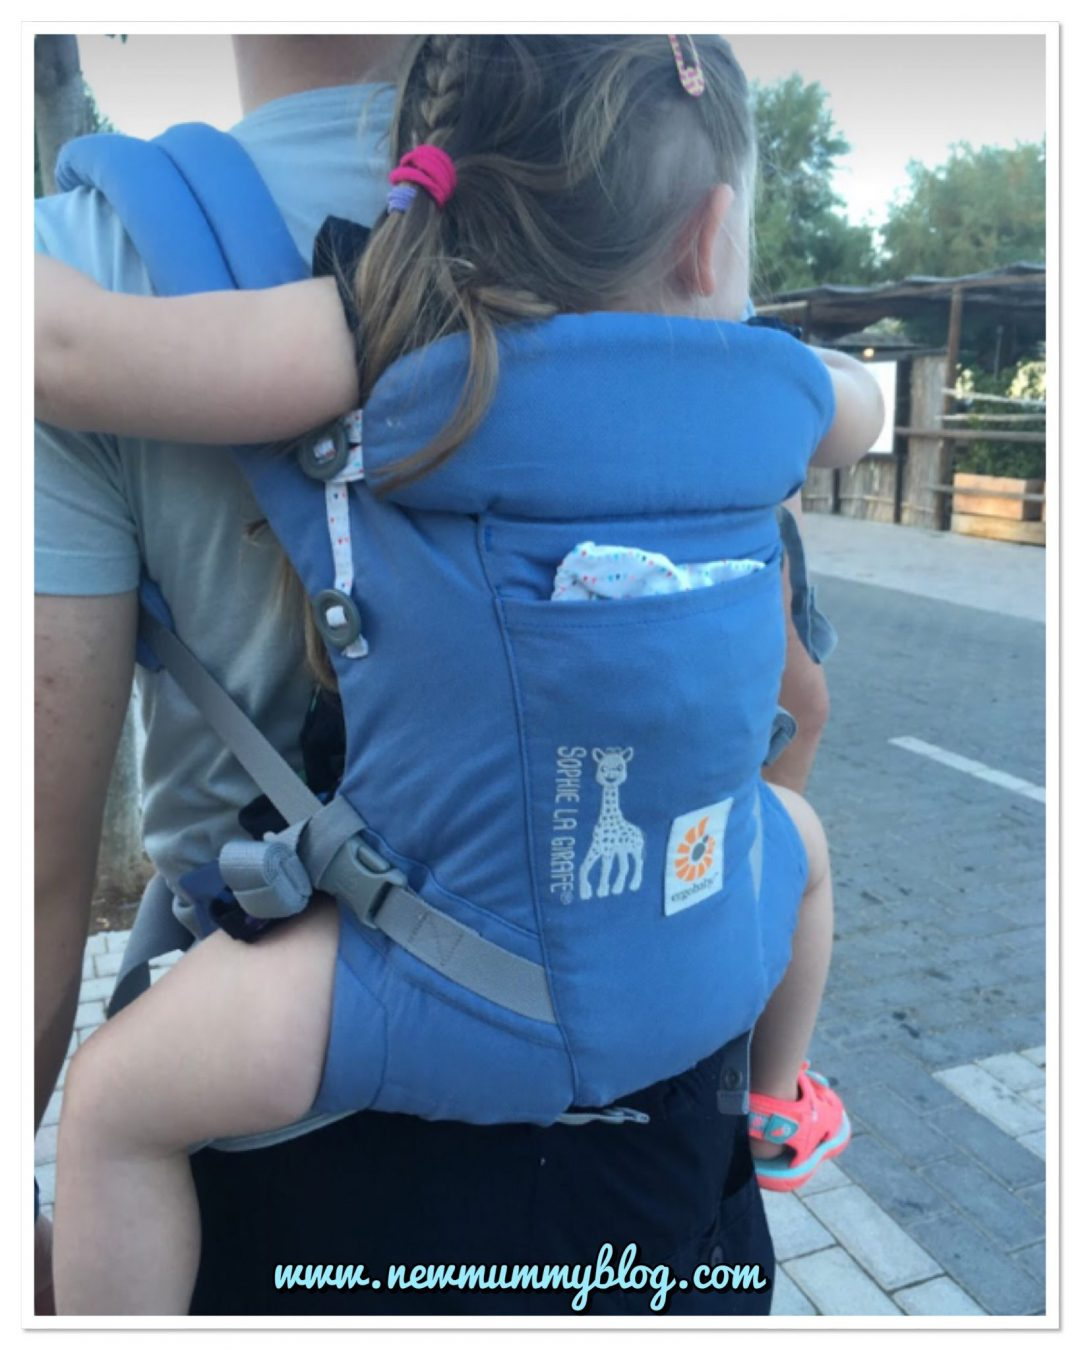 Ergobaby Adapt carrier with Toddler H almost age 3 on holiday in Majorca - showing the ergonomic 'M' shape that the Ergobaby carriers create - the safe way to carry a baby and toddler - up to age 4, it's still comfy